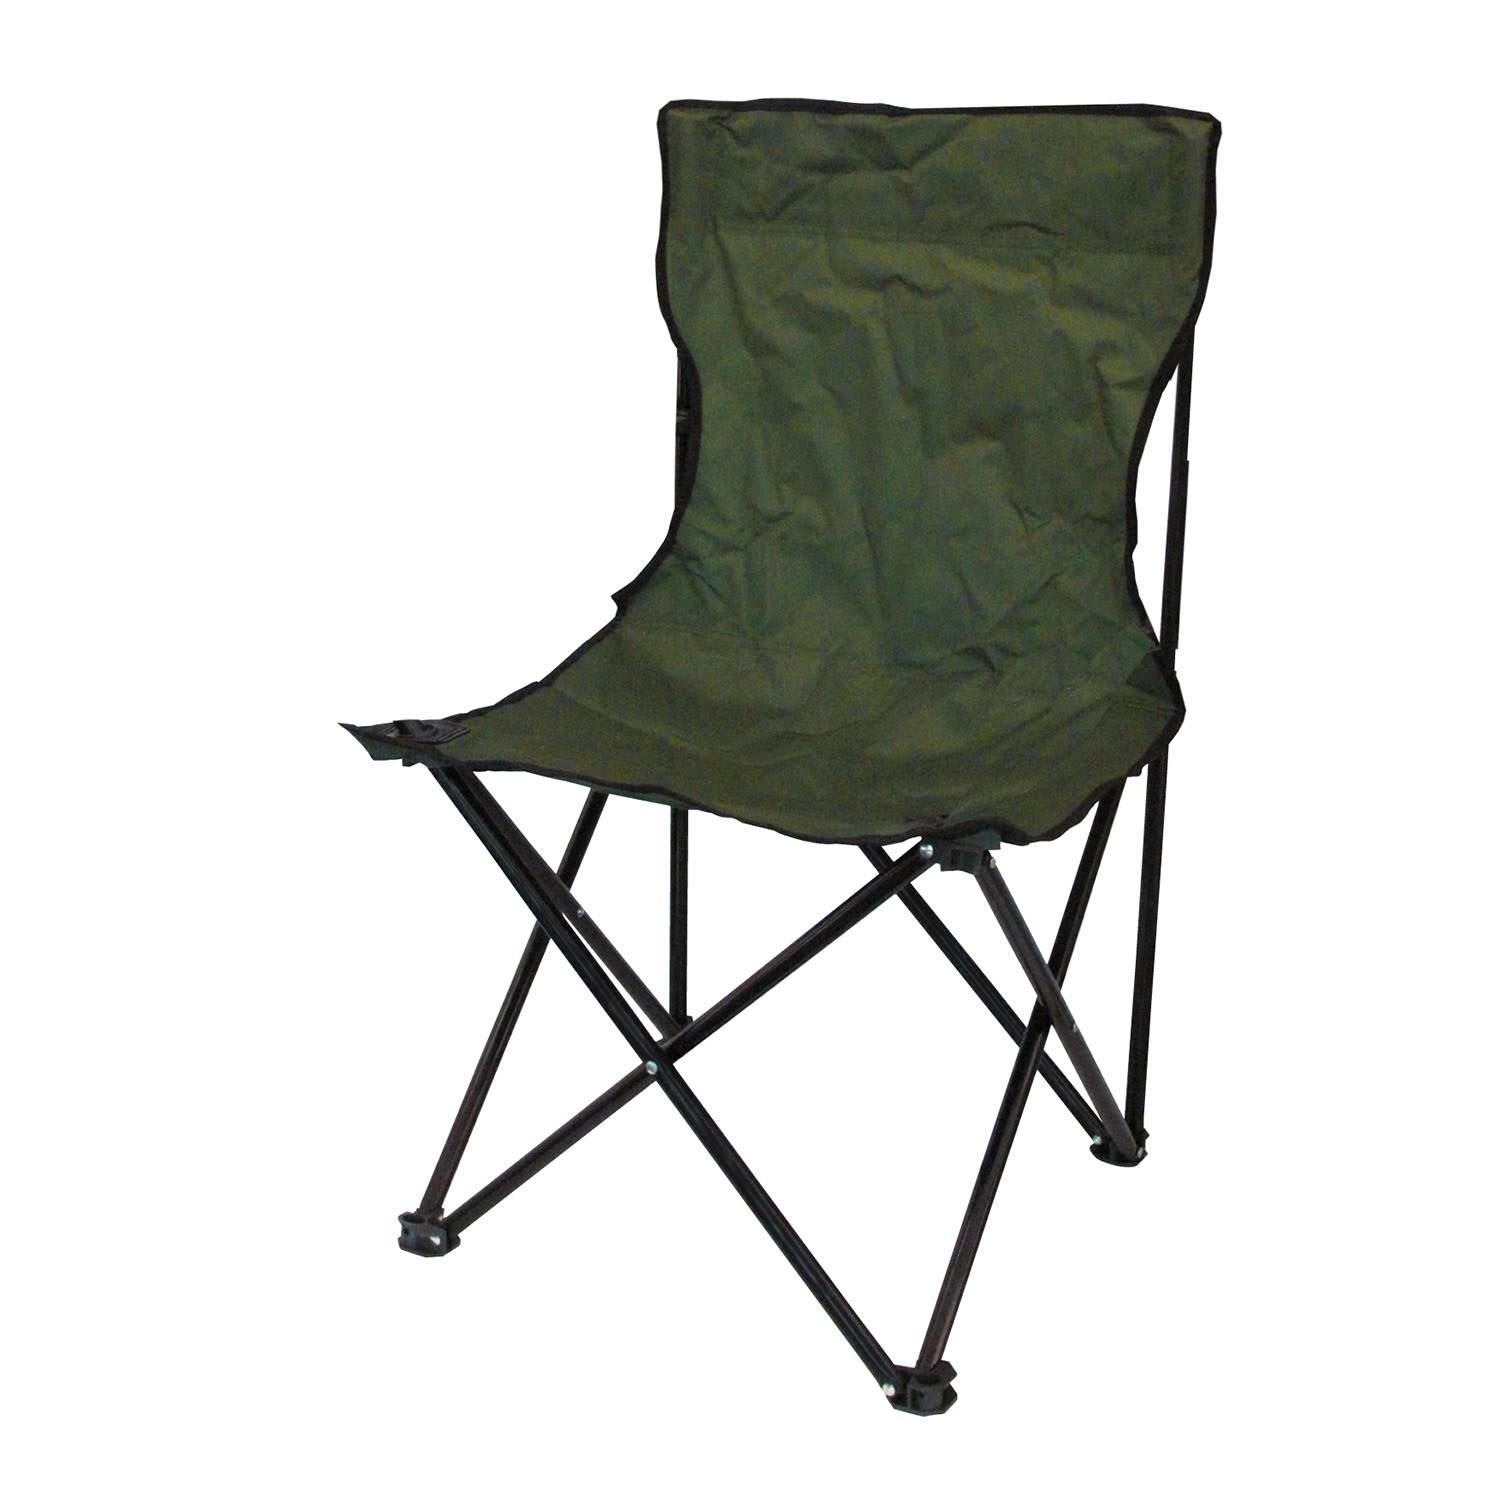 Folding Chair With Arms Folding Camping Chair No Arms Homeware Essentials